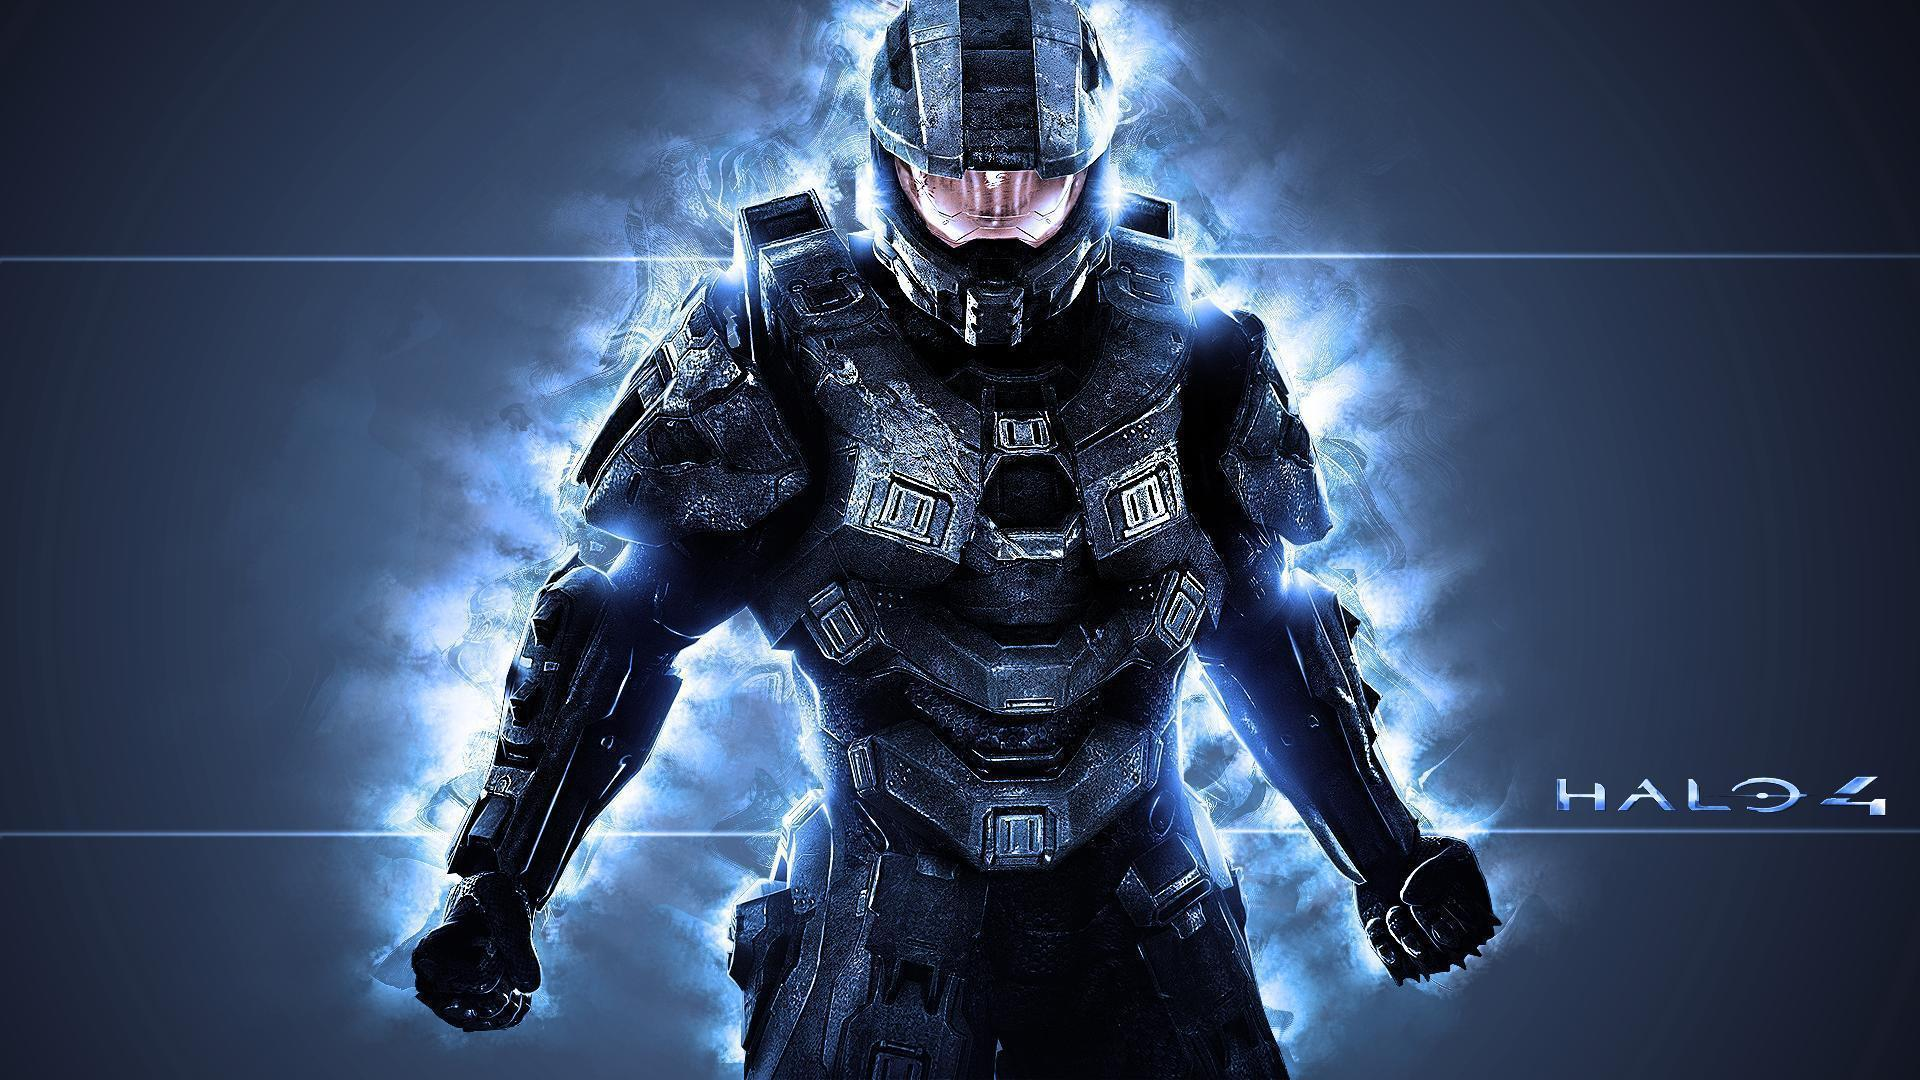 Halo 4 master chief wallpapers wallpaper cave - Halo 4 photos ...